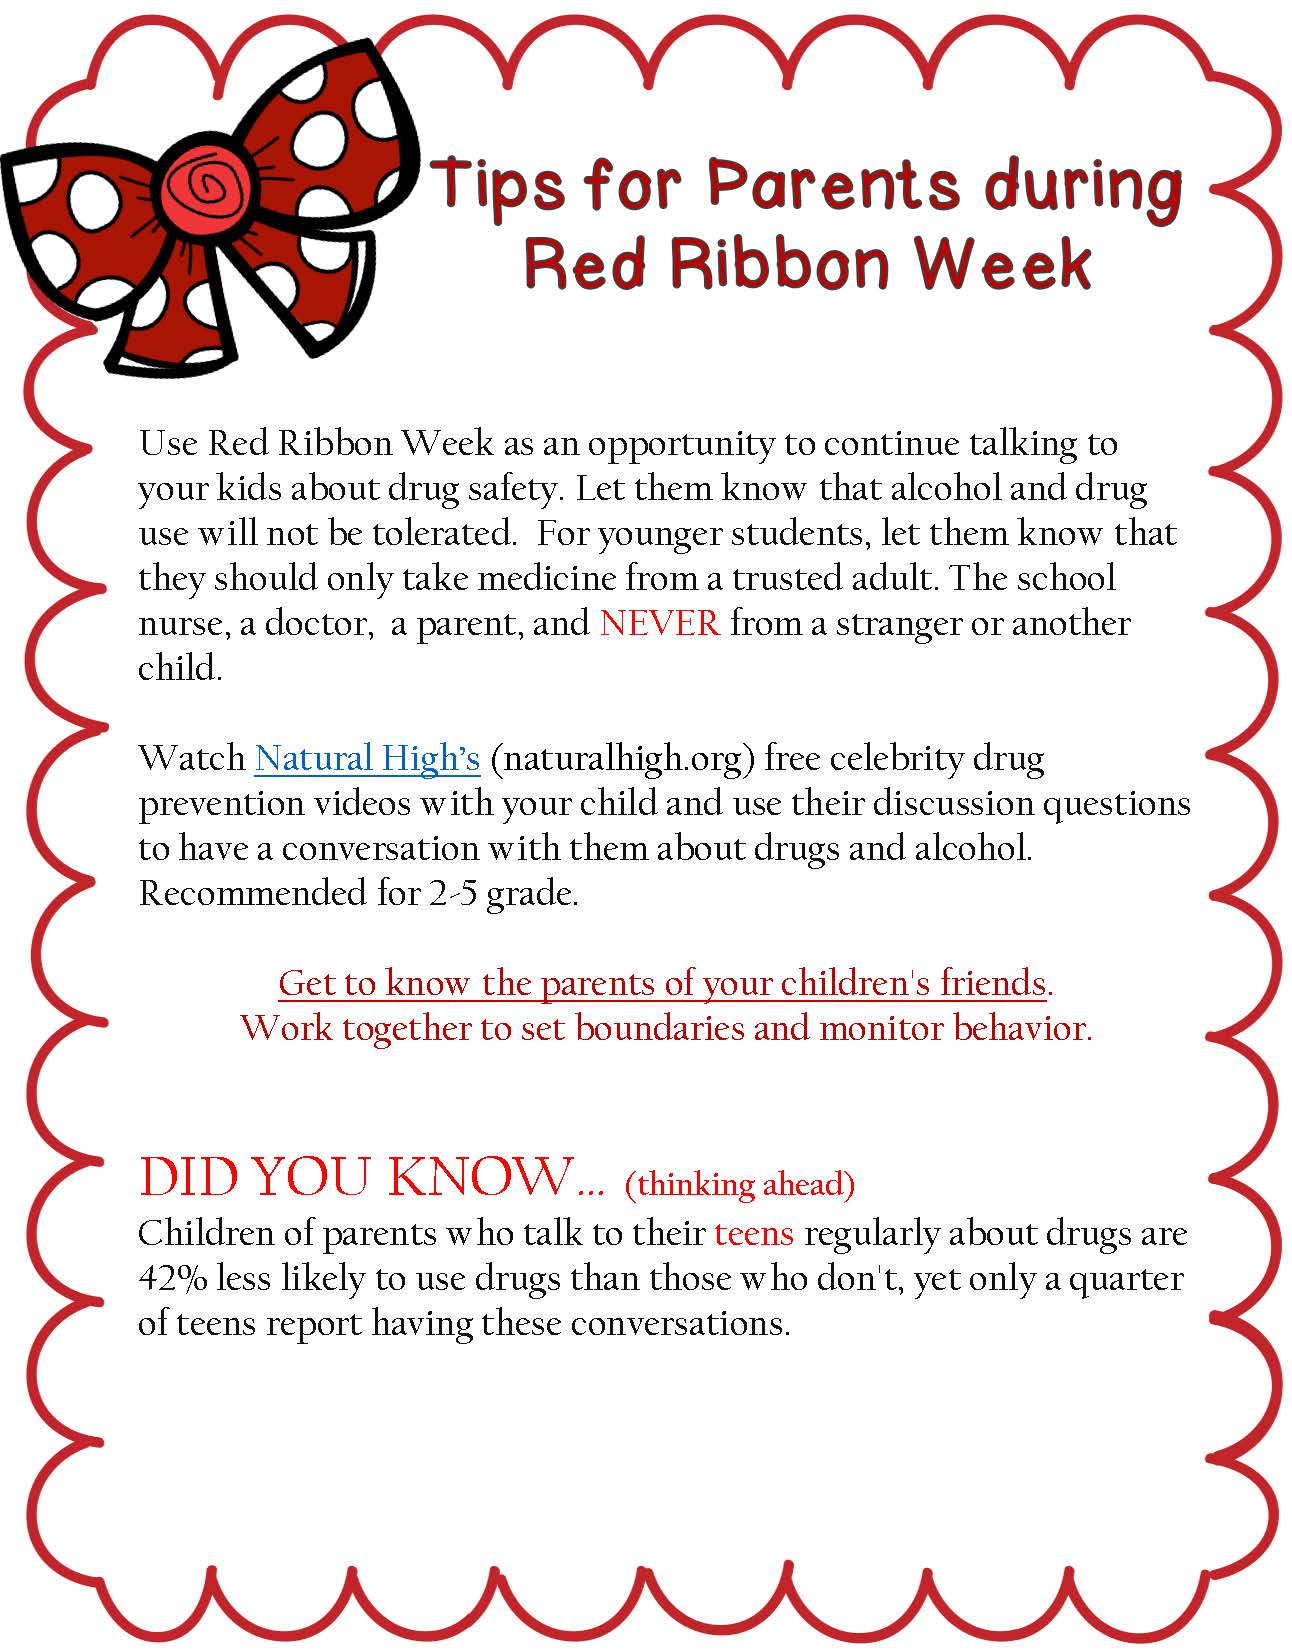 Tips for Parents for Red Ribbon Week